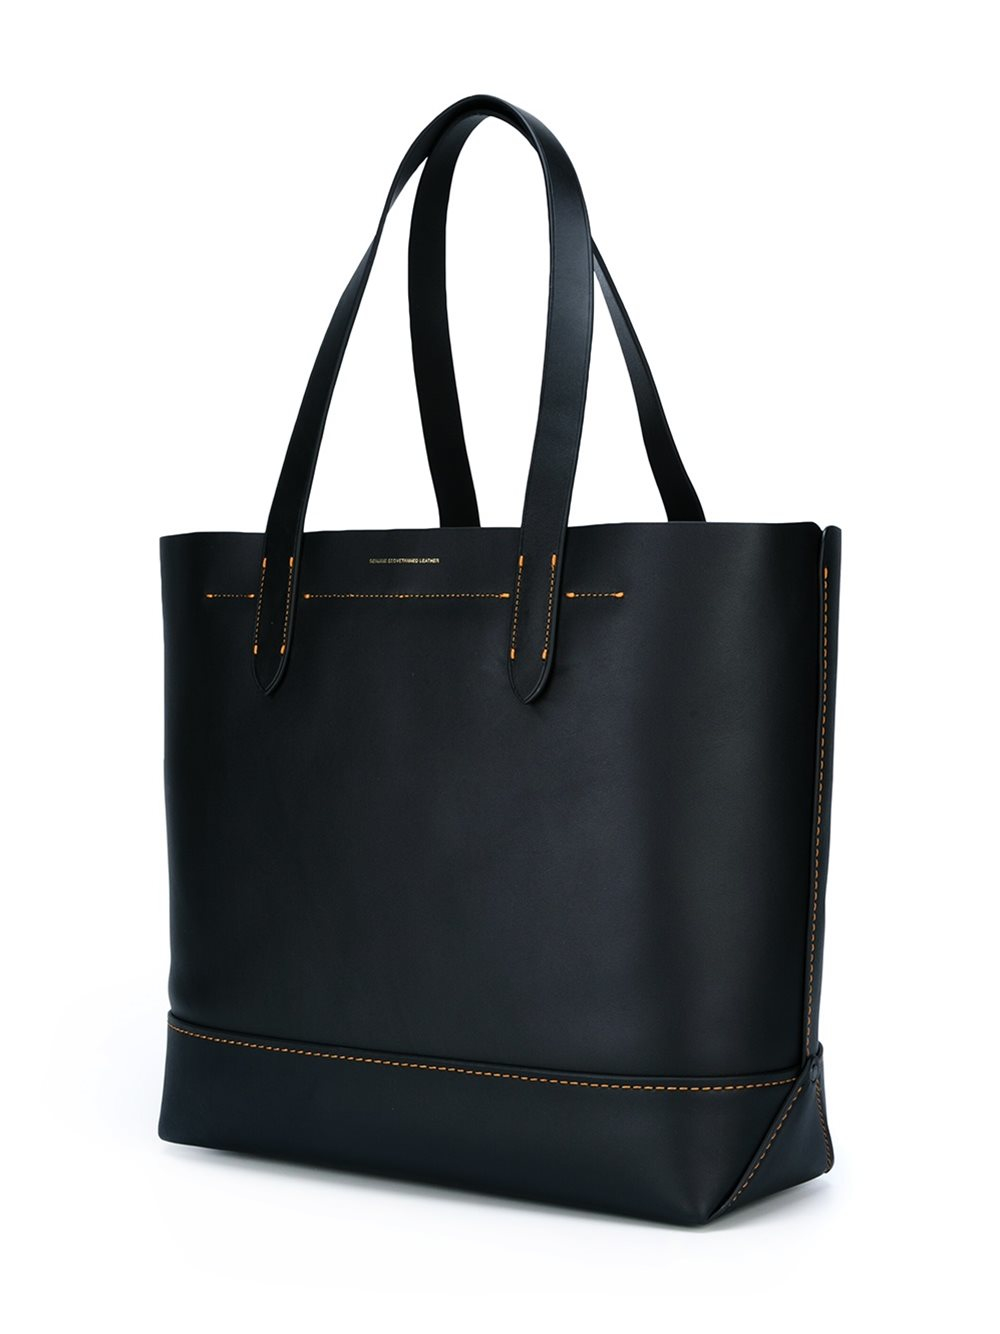 COACH Leather Dinosaur Patch Tote Bag in Black